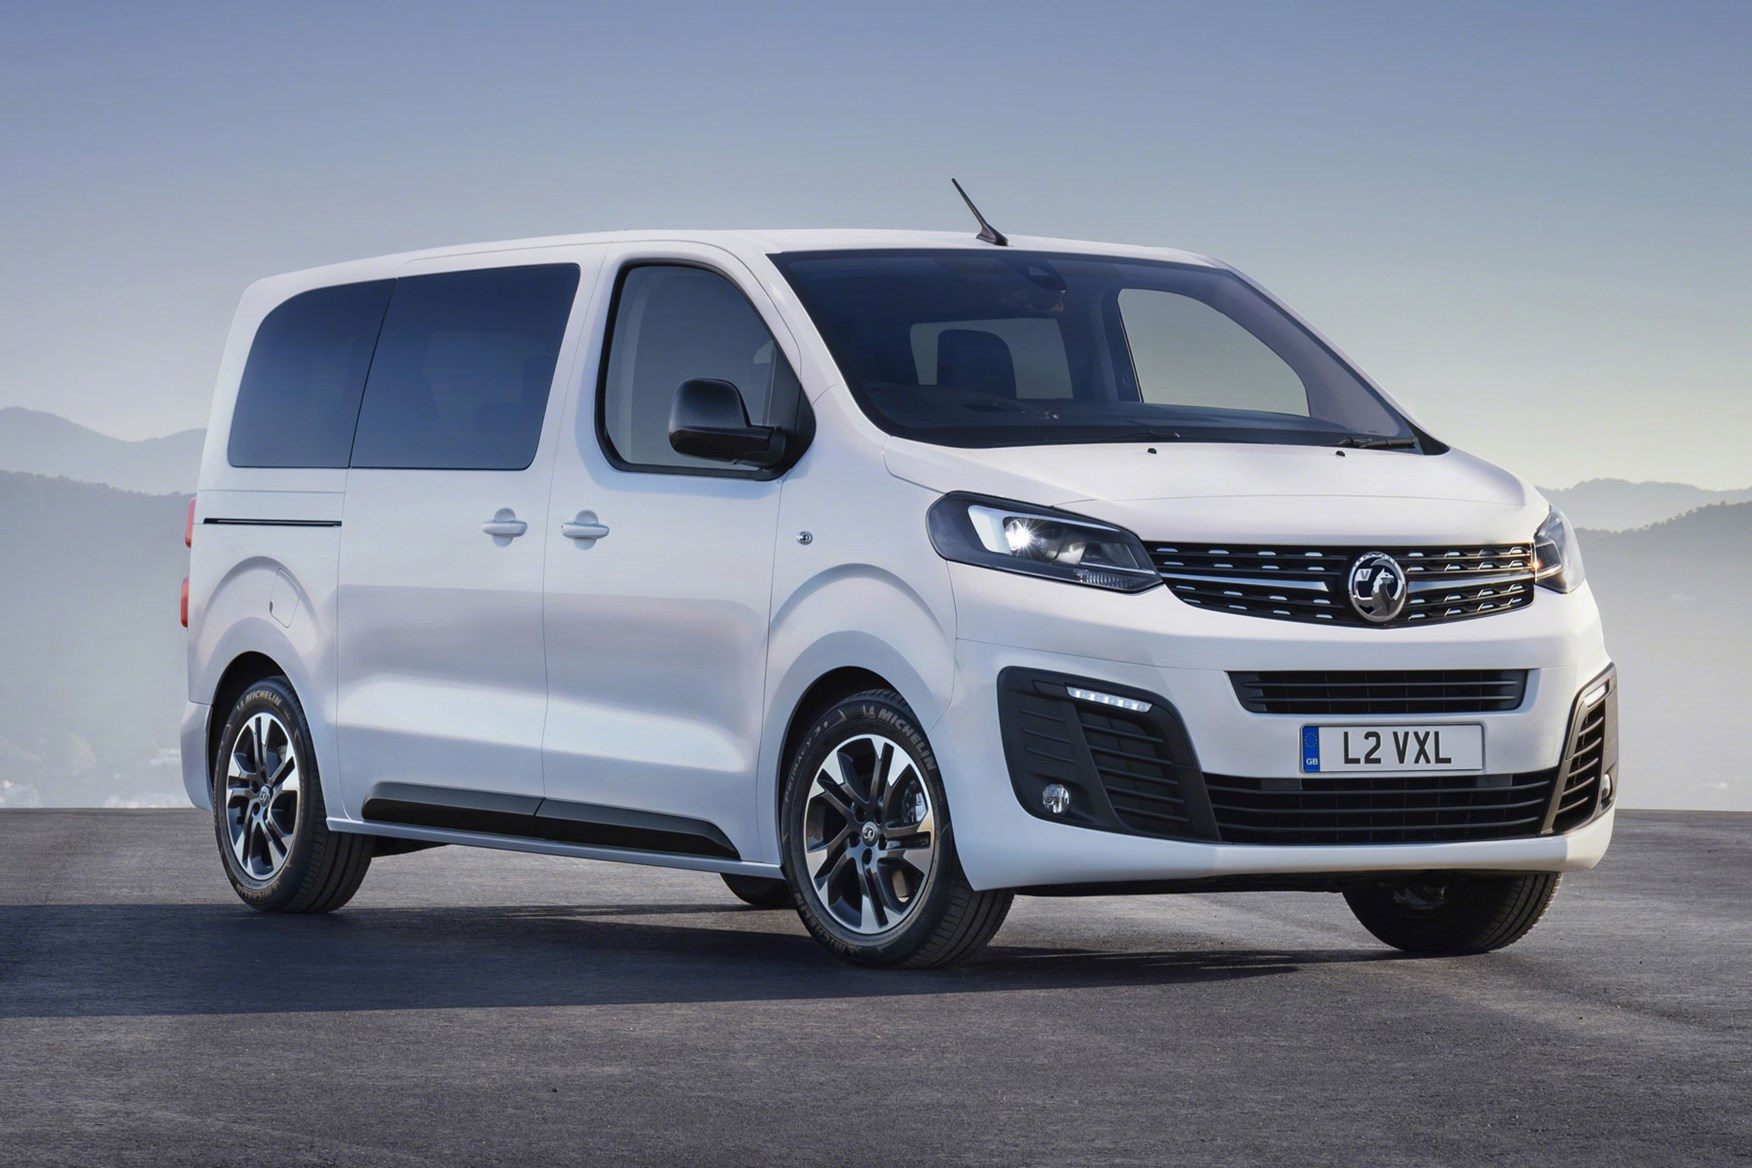 1b75b96f9d ... All-new Vauxhall Vivaro on-sale in 2019 - front view of Life MPV